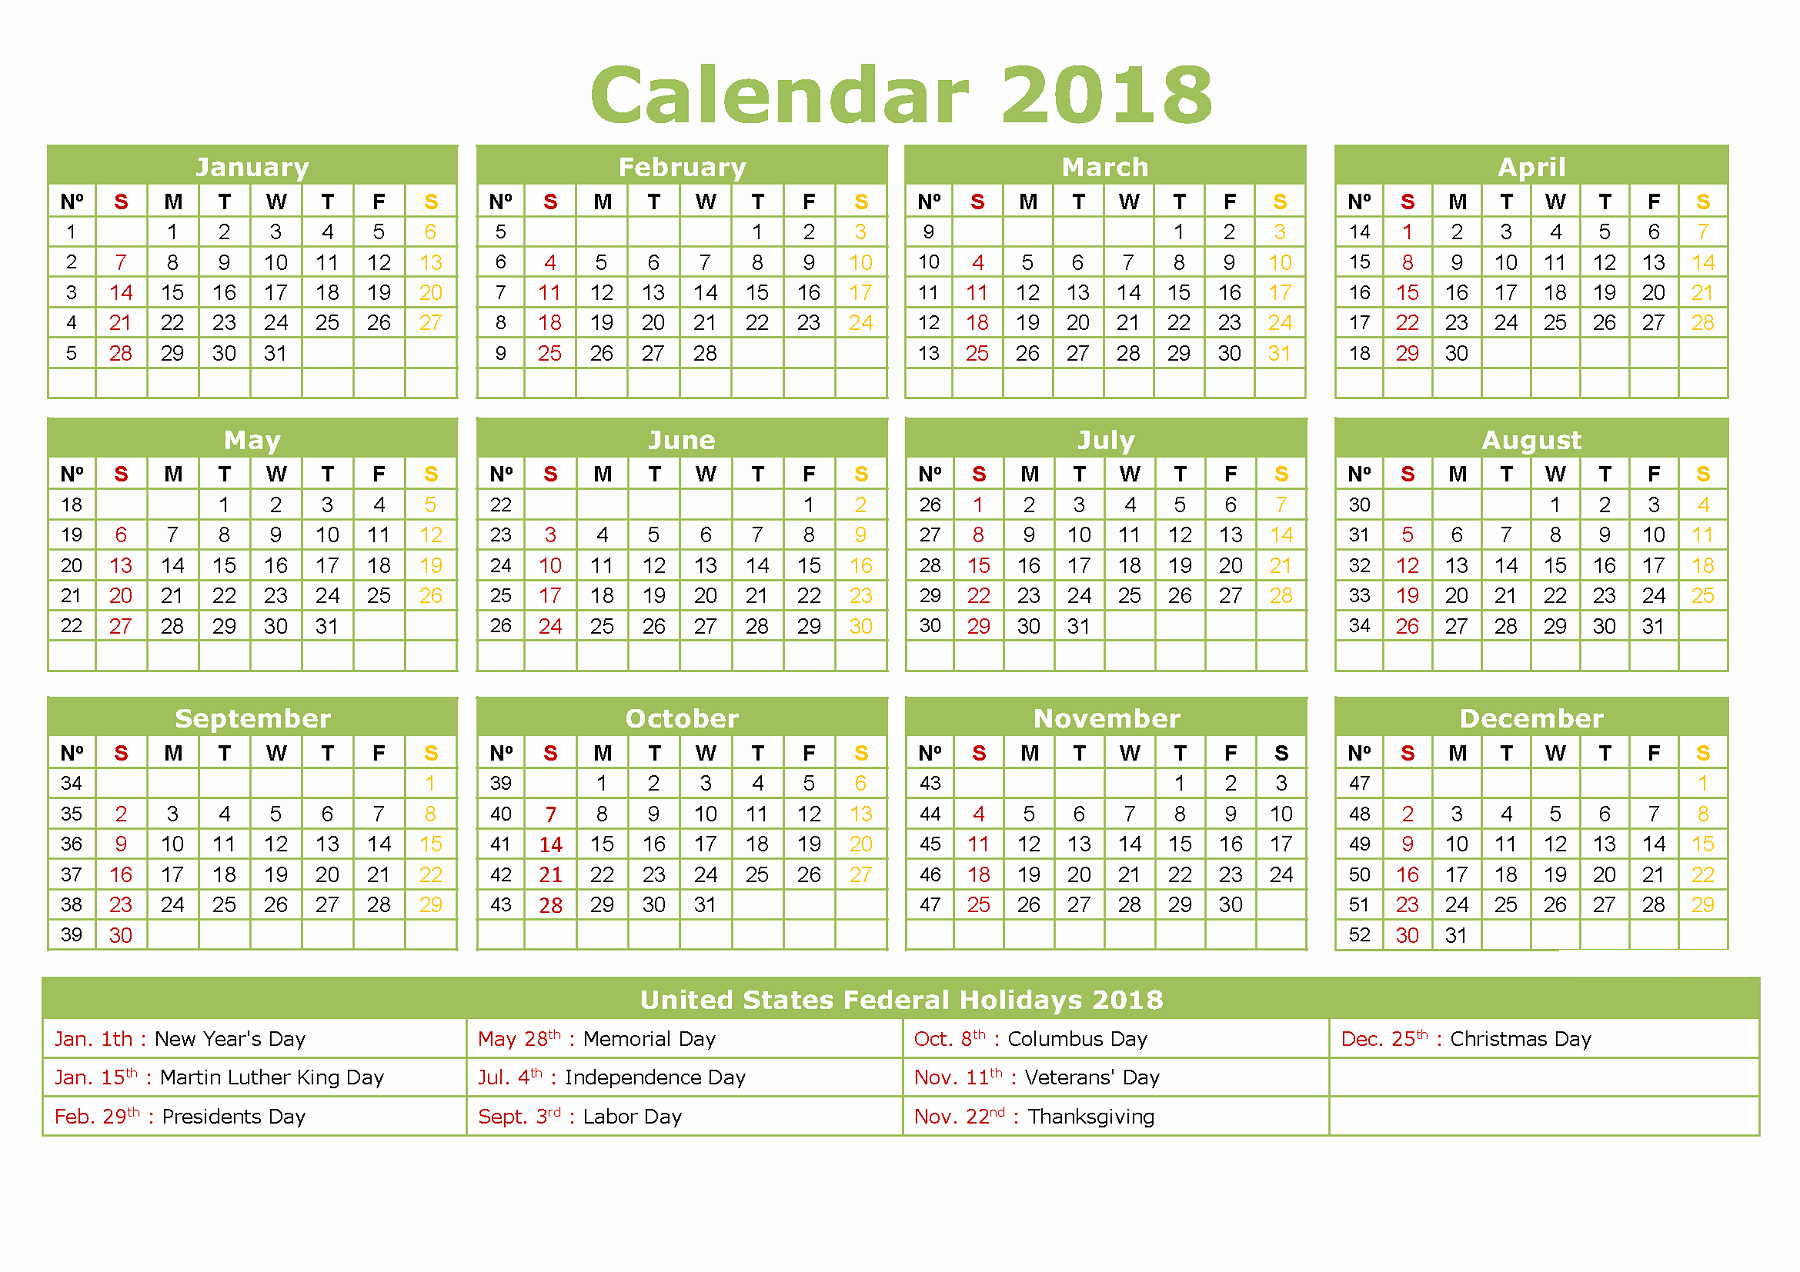 Free Printable Yearly Calendar 2018 Best Of Yearly Calendar 2018 Printable